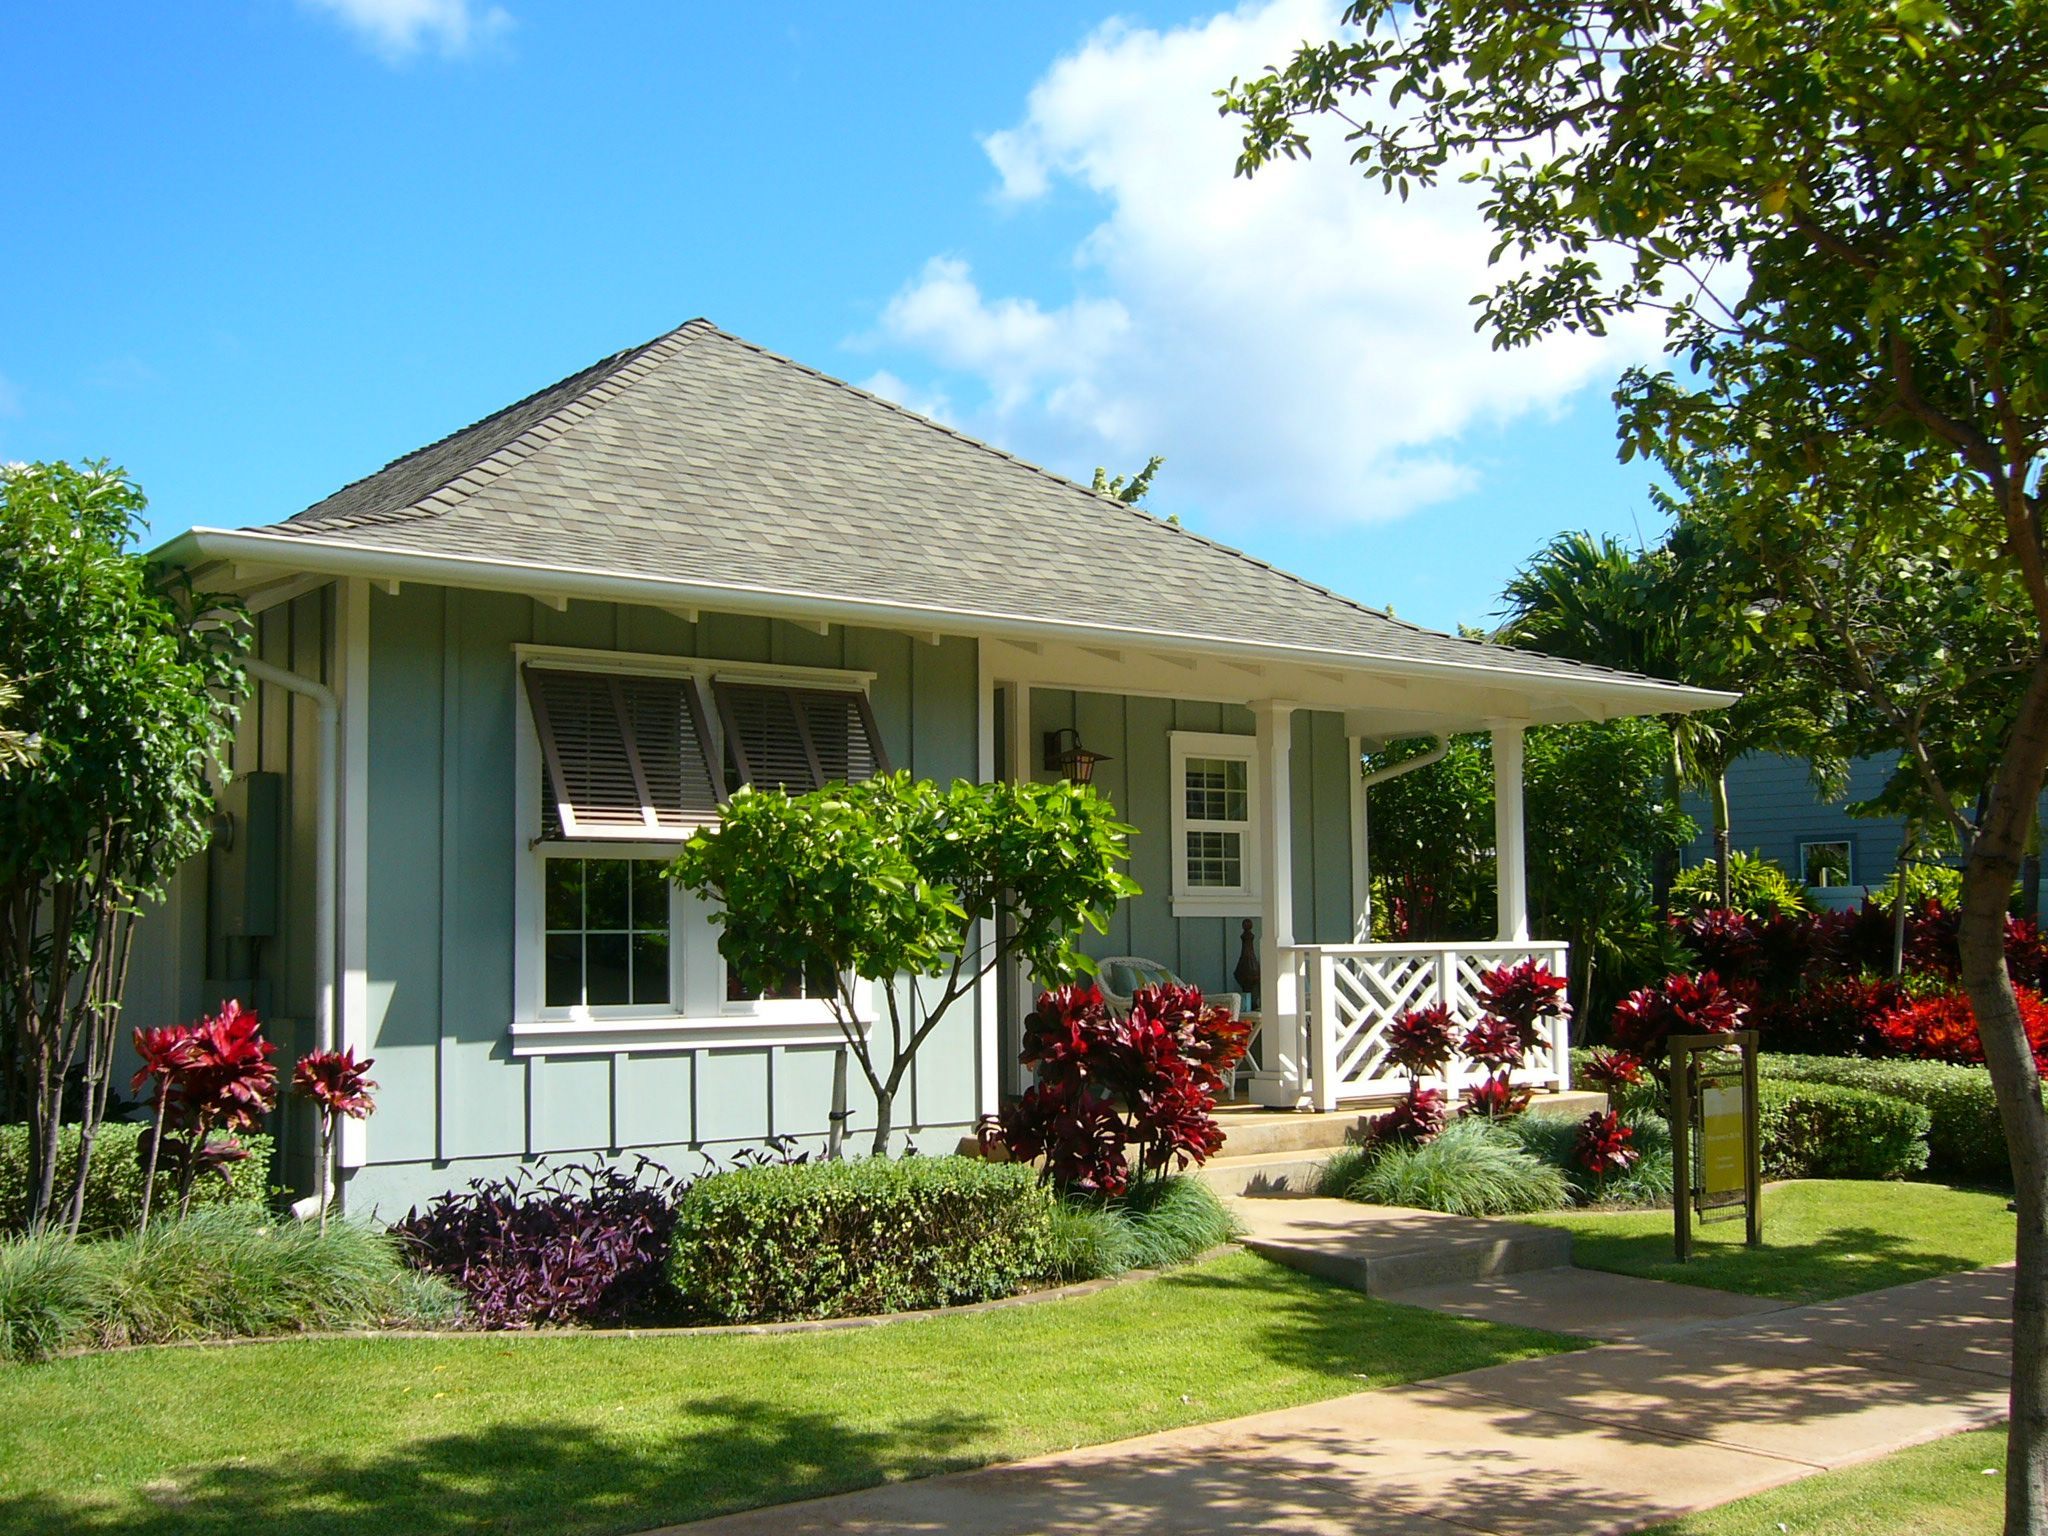 hawaii plantation houses yahoo search results